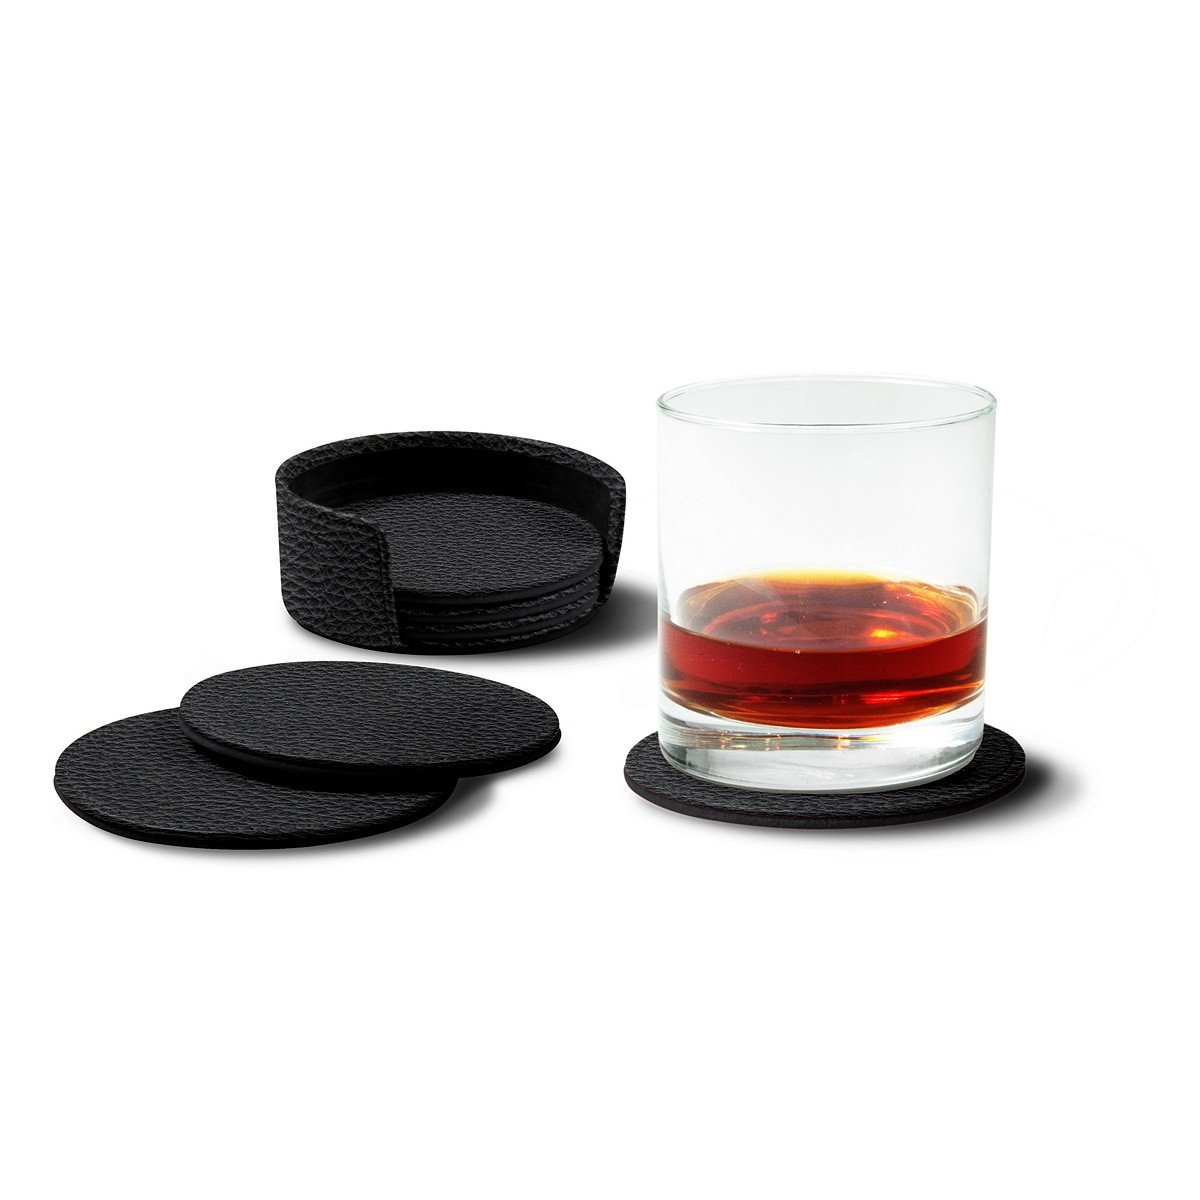 Lucrin - Set of 6 Round Real Leather Coasters with Coaster Holder - Black - Granulated Leather